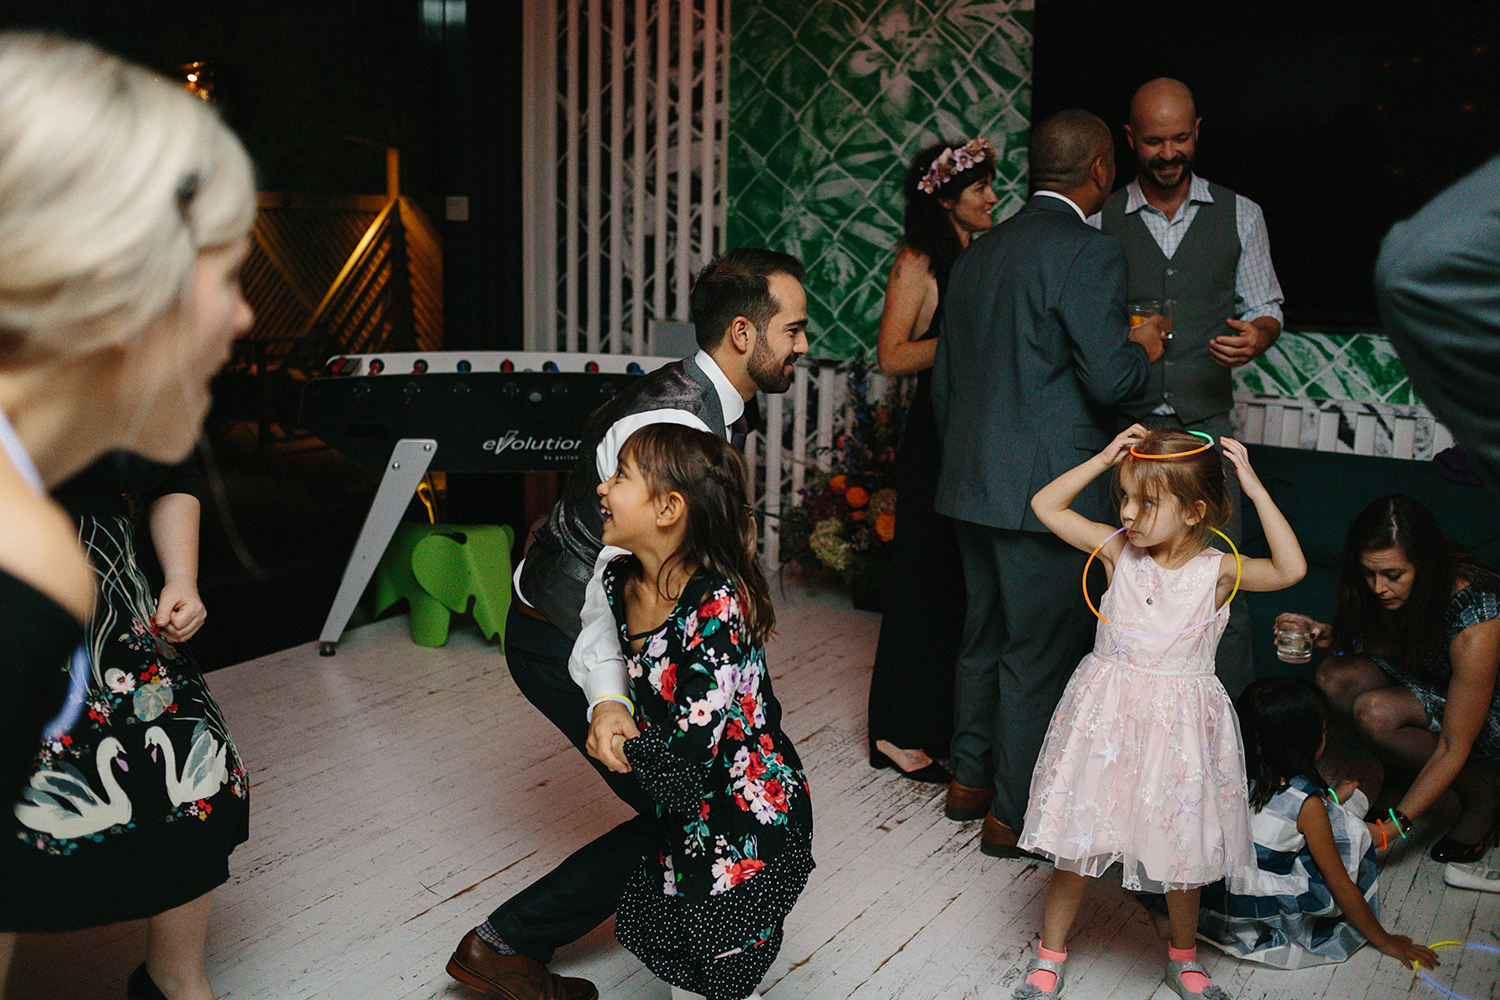 Prince-Edward-County-Wedding-Photographer-Drake-Devonshire-Elopement-Ryanne-Hollies-Photography-junebug-weddings-best-of-the-best-reception-glassbox-guests-dancing-cheering-party-guests-dancing-candid-inspo.jpg